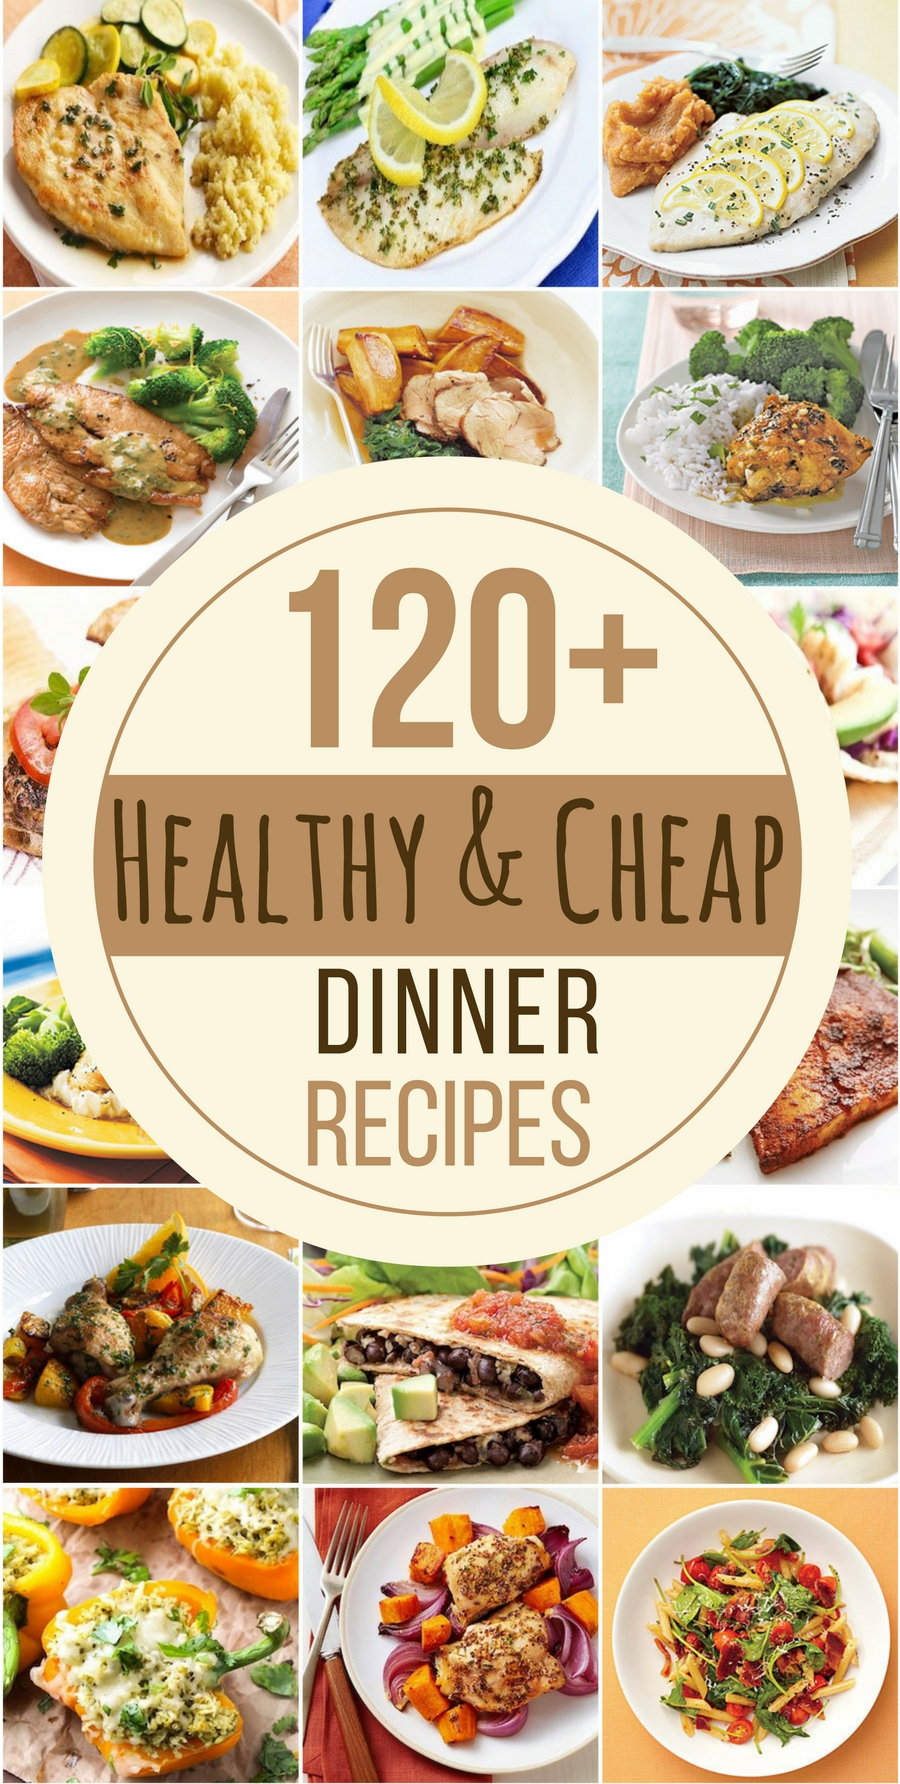 10 Fabulous Cheap Meal Ideas For Families 120 healthy and cheap dinner recipes healthy dinner recipes meal 2021